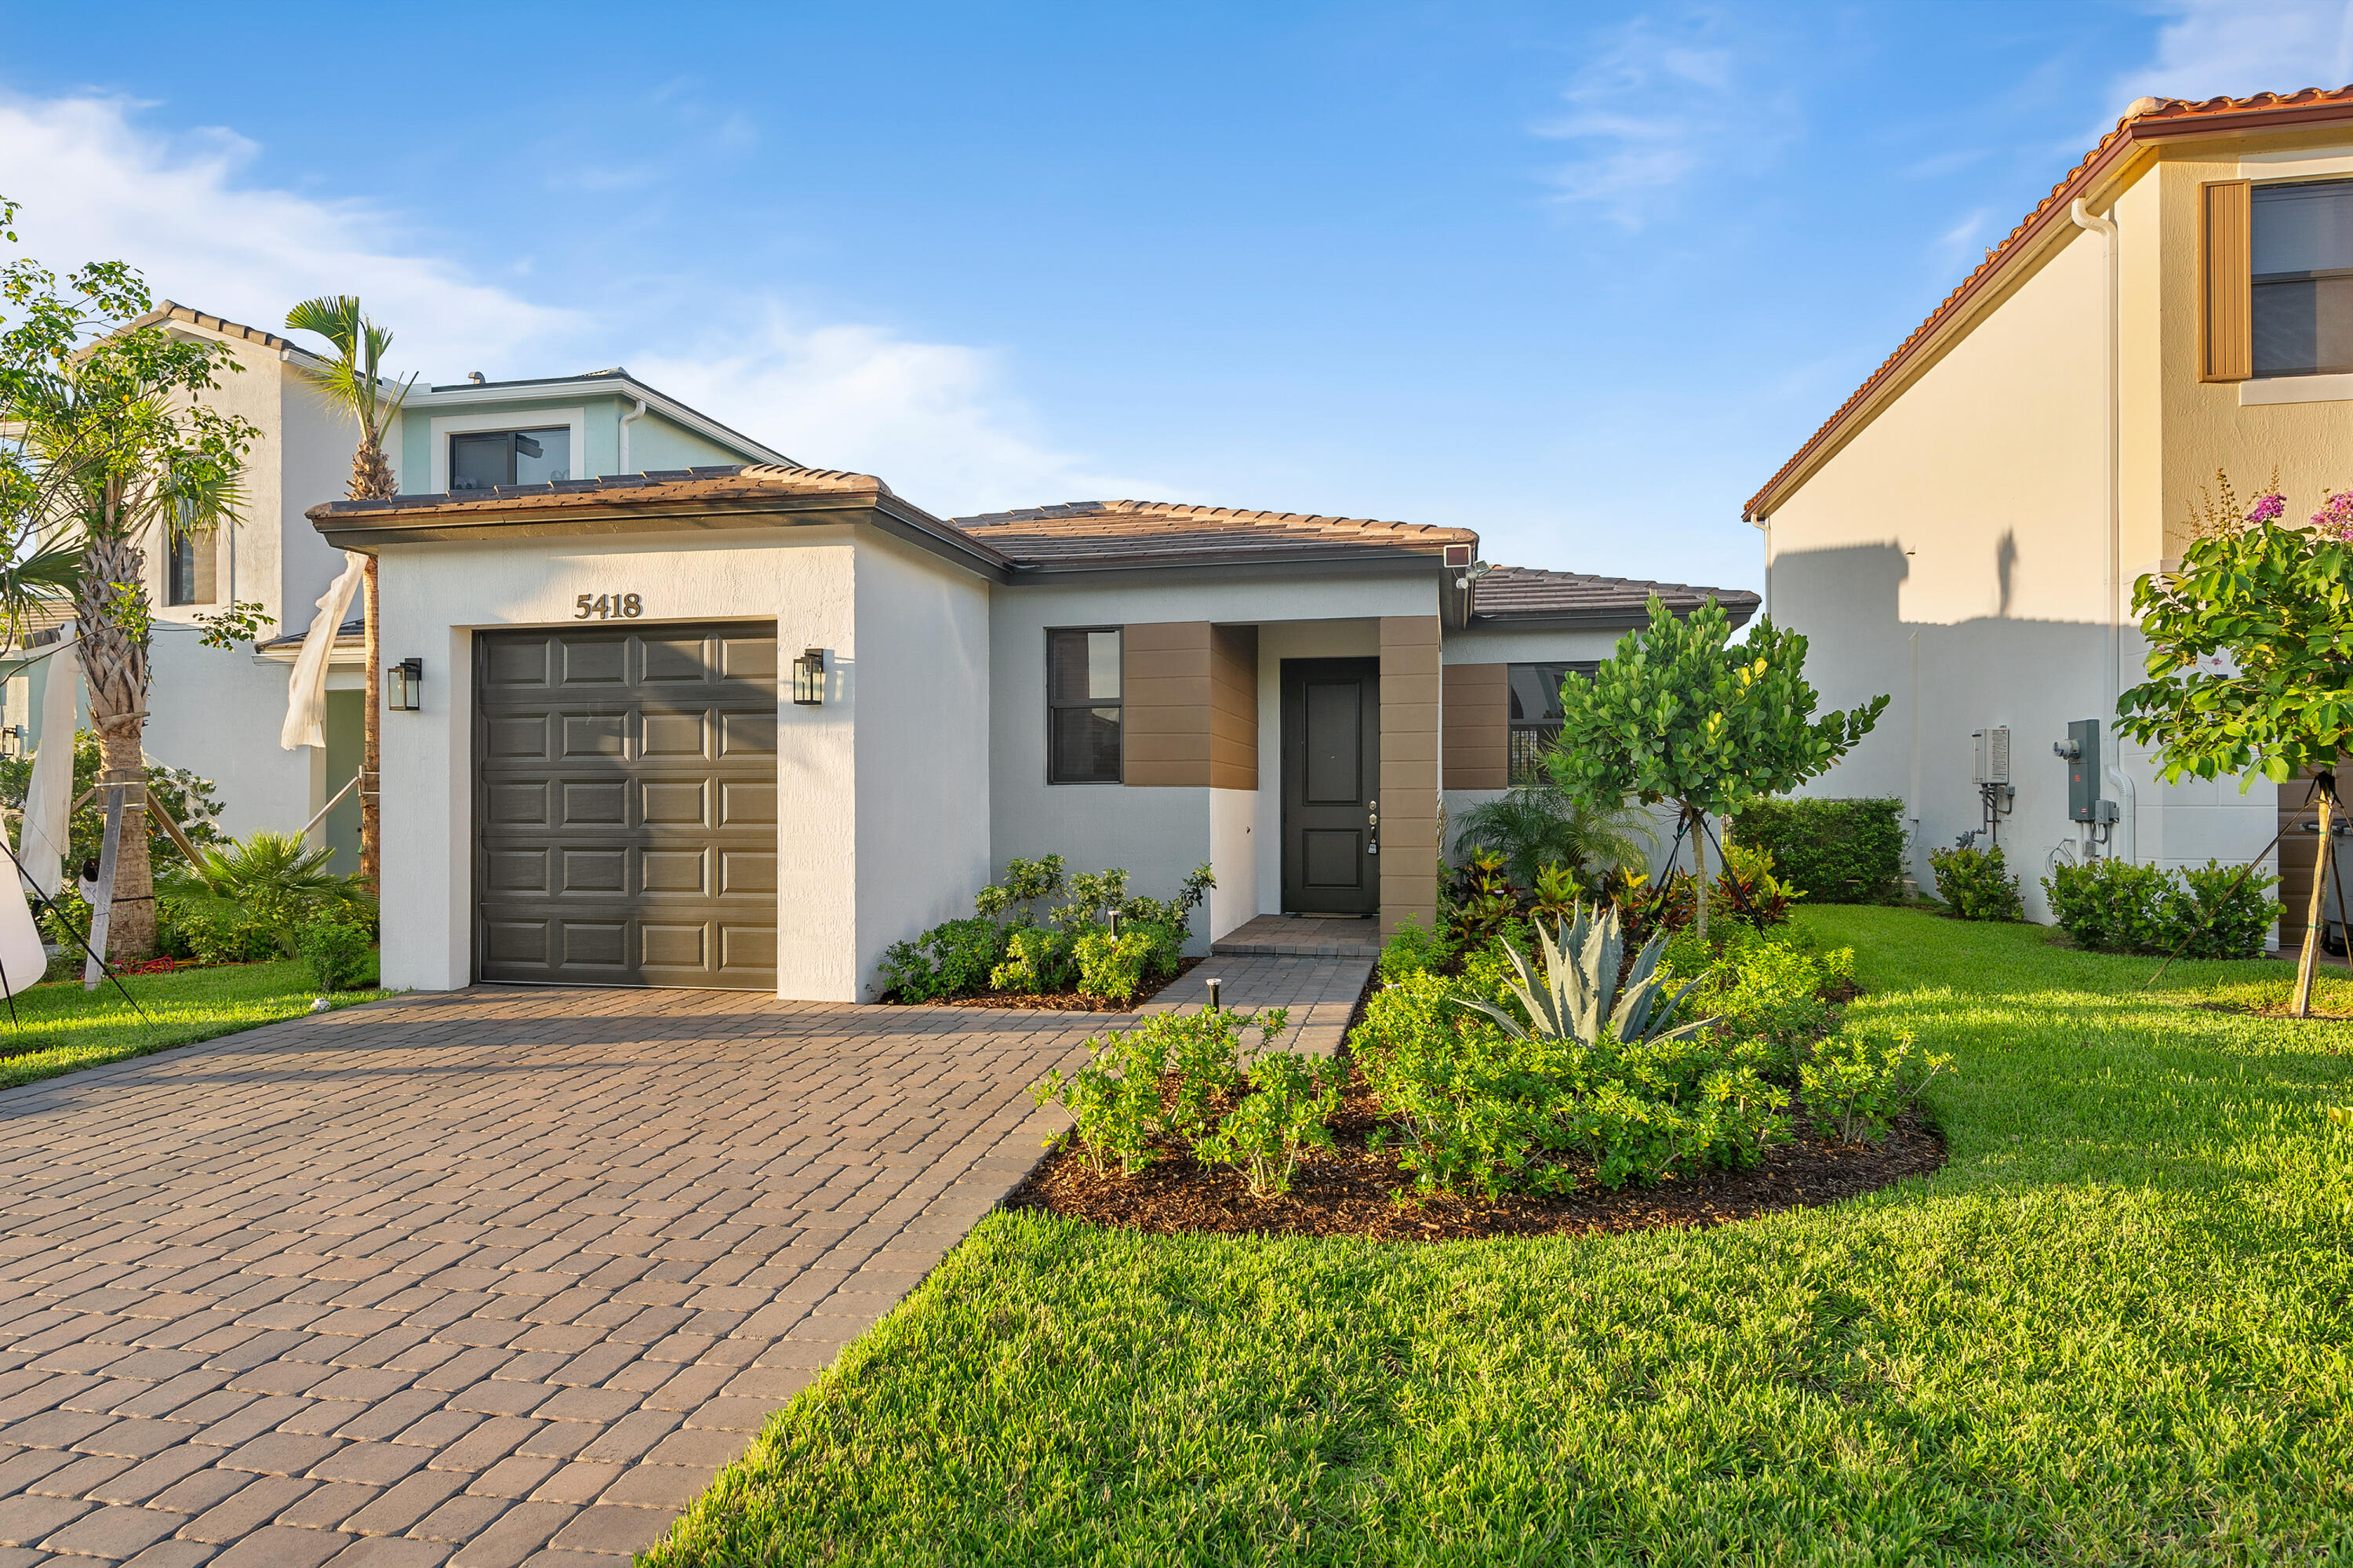 Home for sale in SKY COVE Loxahatchee Florida